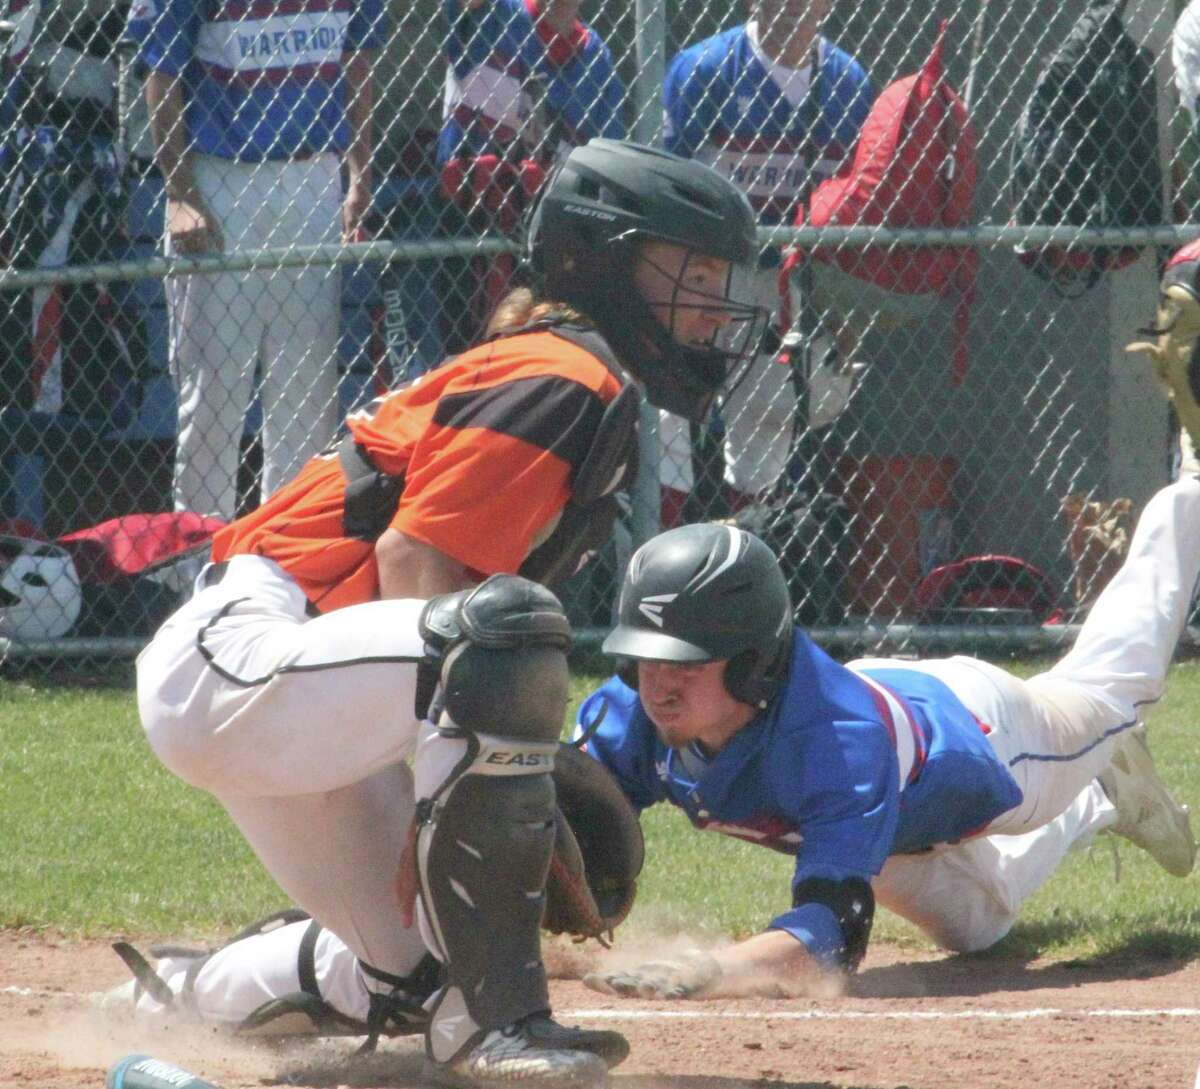 Chippewa Hills' Sam Cole dives safely into third base on Saturday against Ludington in a Division 2 district semifinal game. (Pioneer photo/John Raffel)